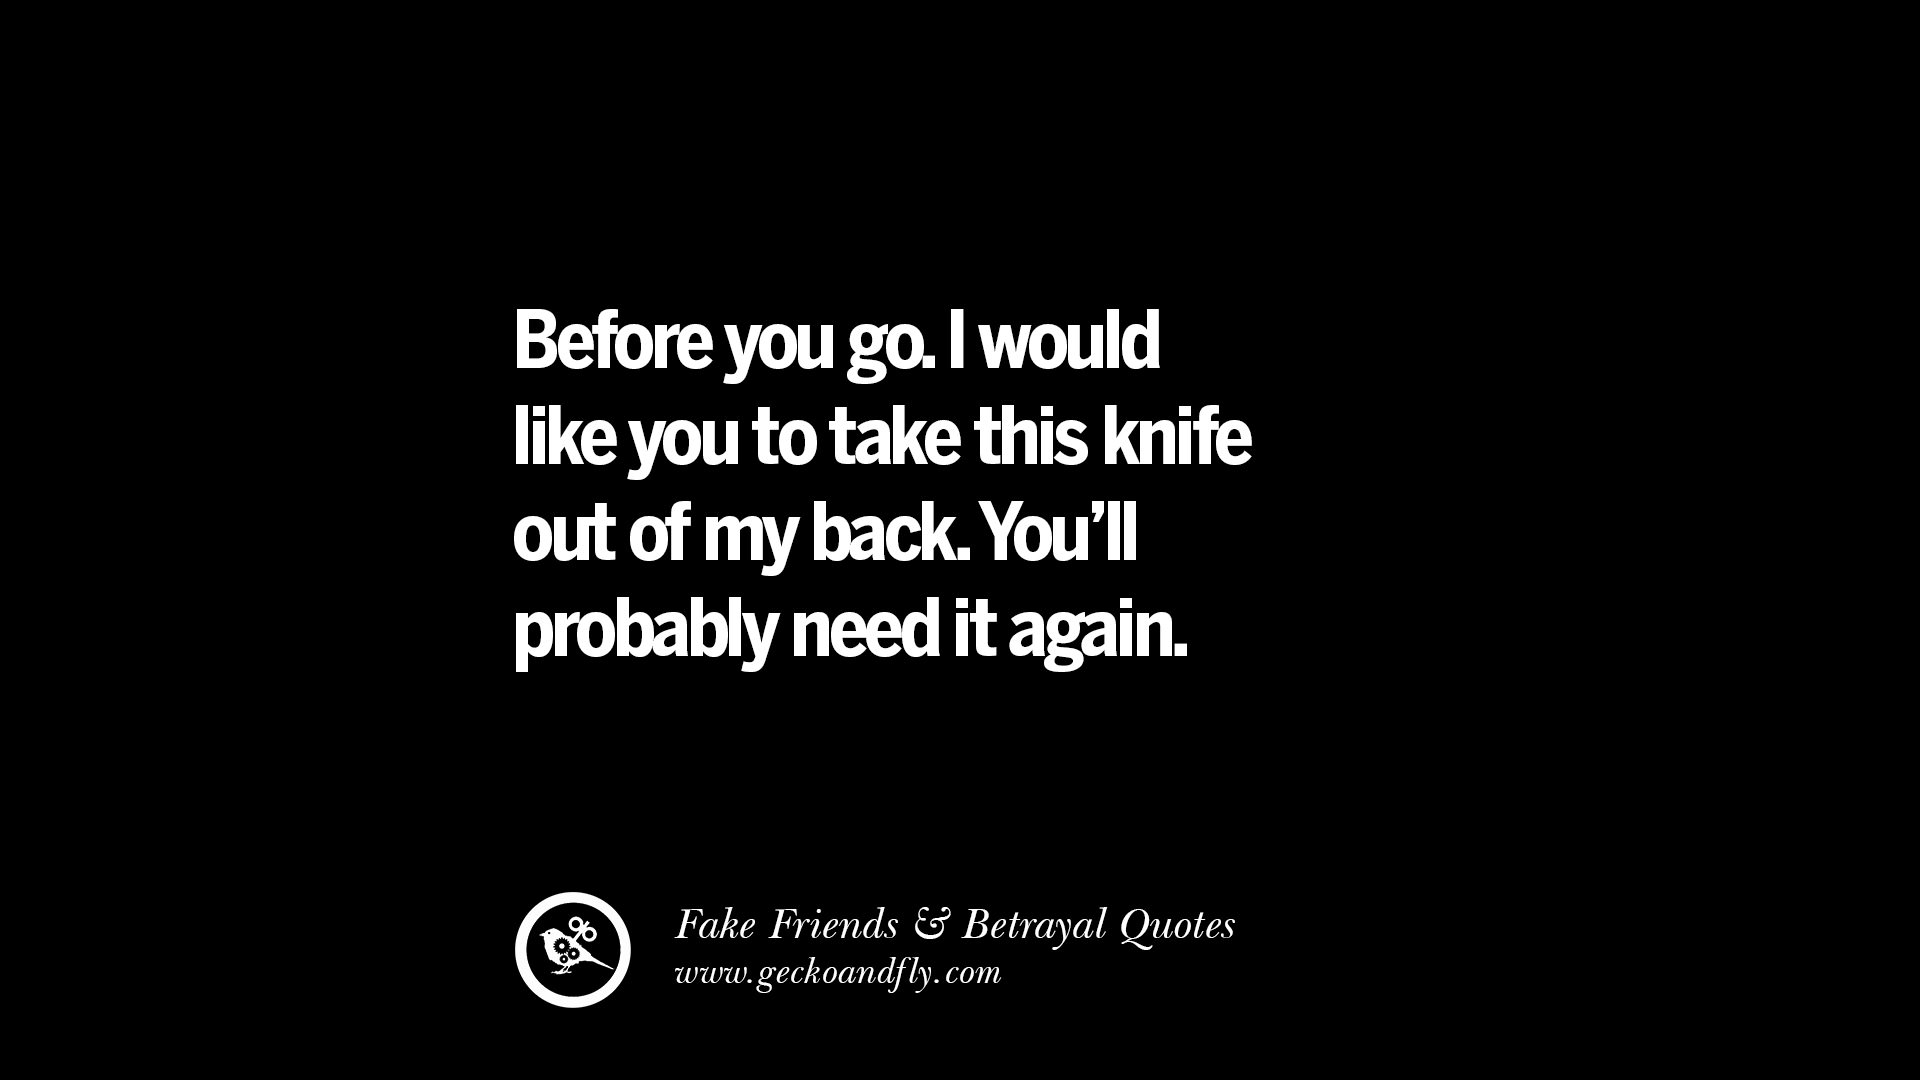 Quotes About Past Memories Of Friendship Fakefriendsbetrayquotes03 1920×1080  Bullshit